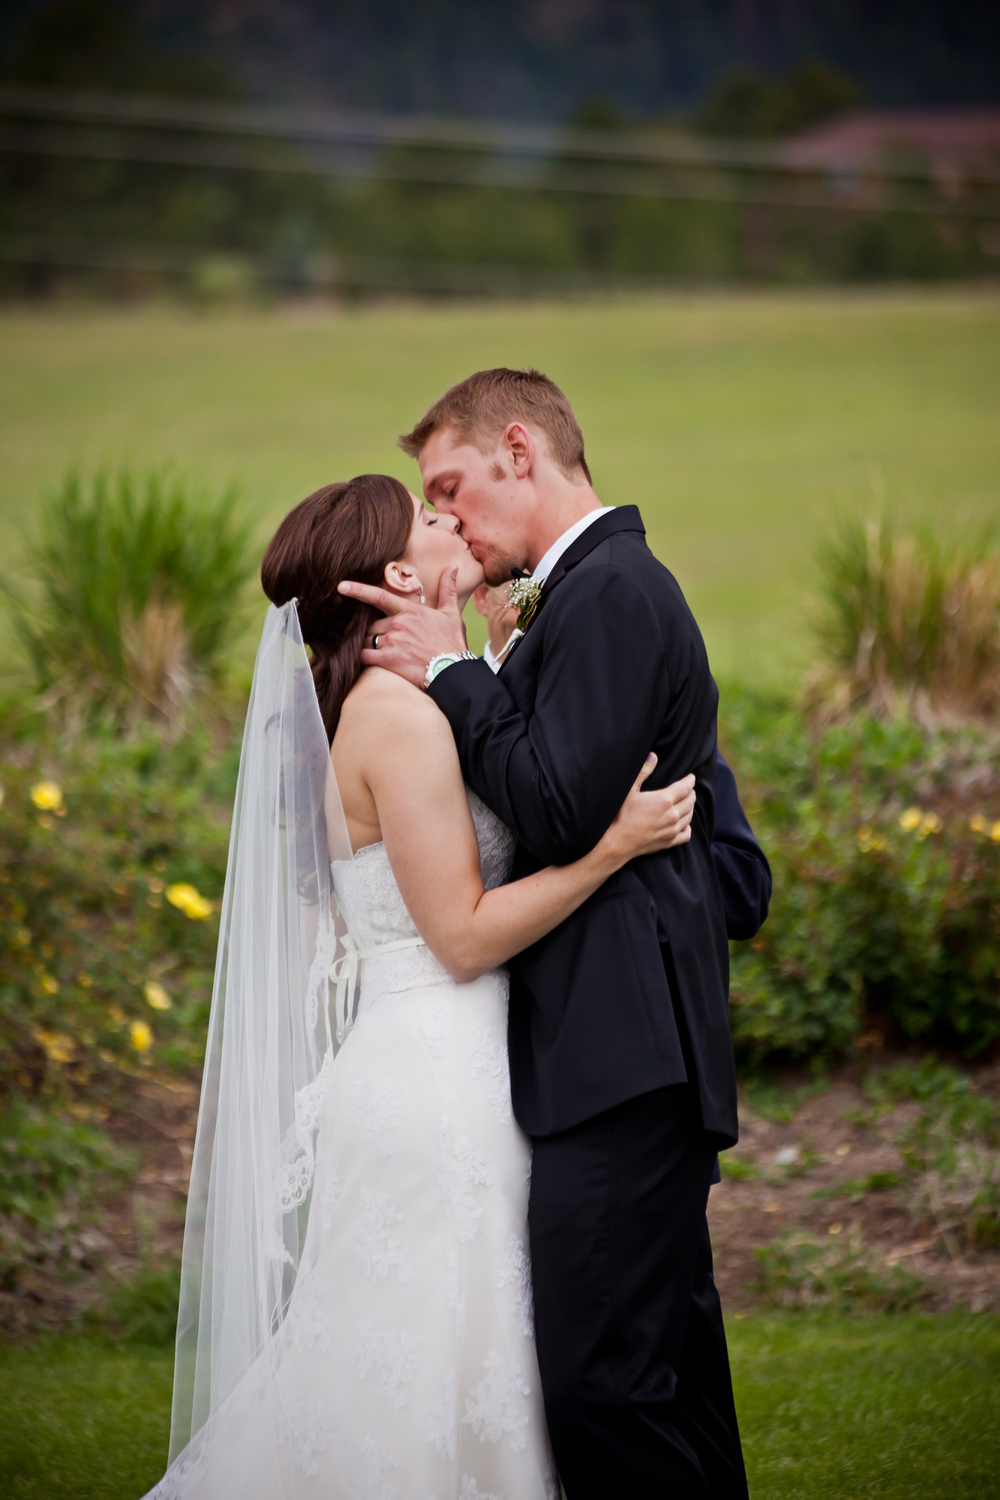 Crooked_Willow_Farms_Wedding_038.JPG